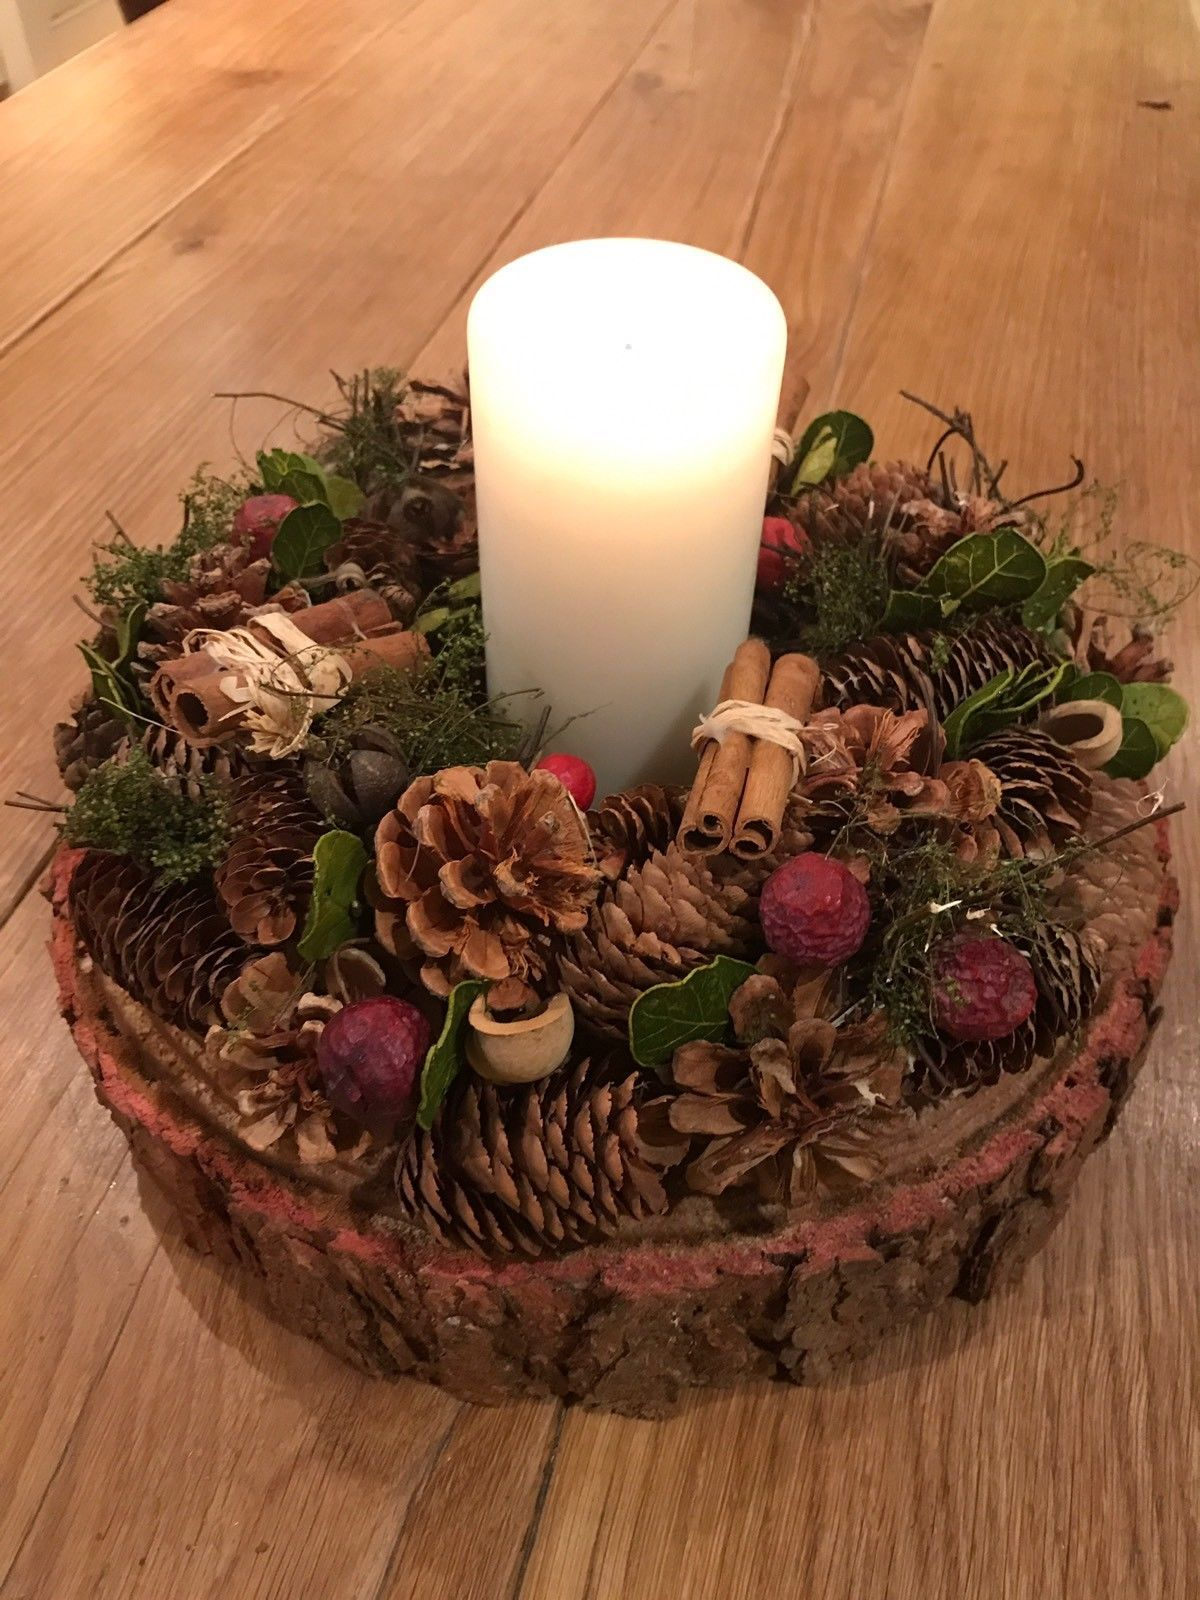 Christmas Wreath Wedding Garland 12 30cm With Real Rustic Log Slice Christmas Table Centerpieces Christmas Candle Centerpiece Christmas Table Decorations